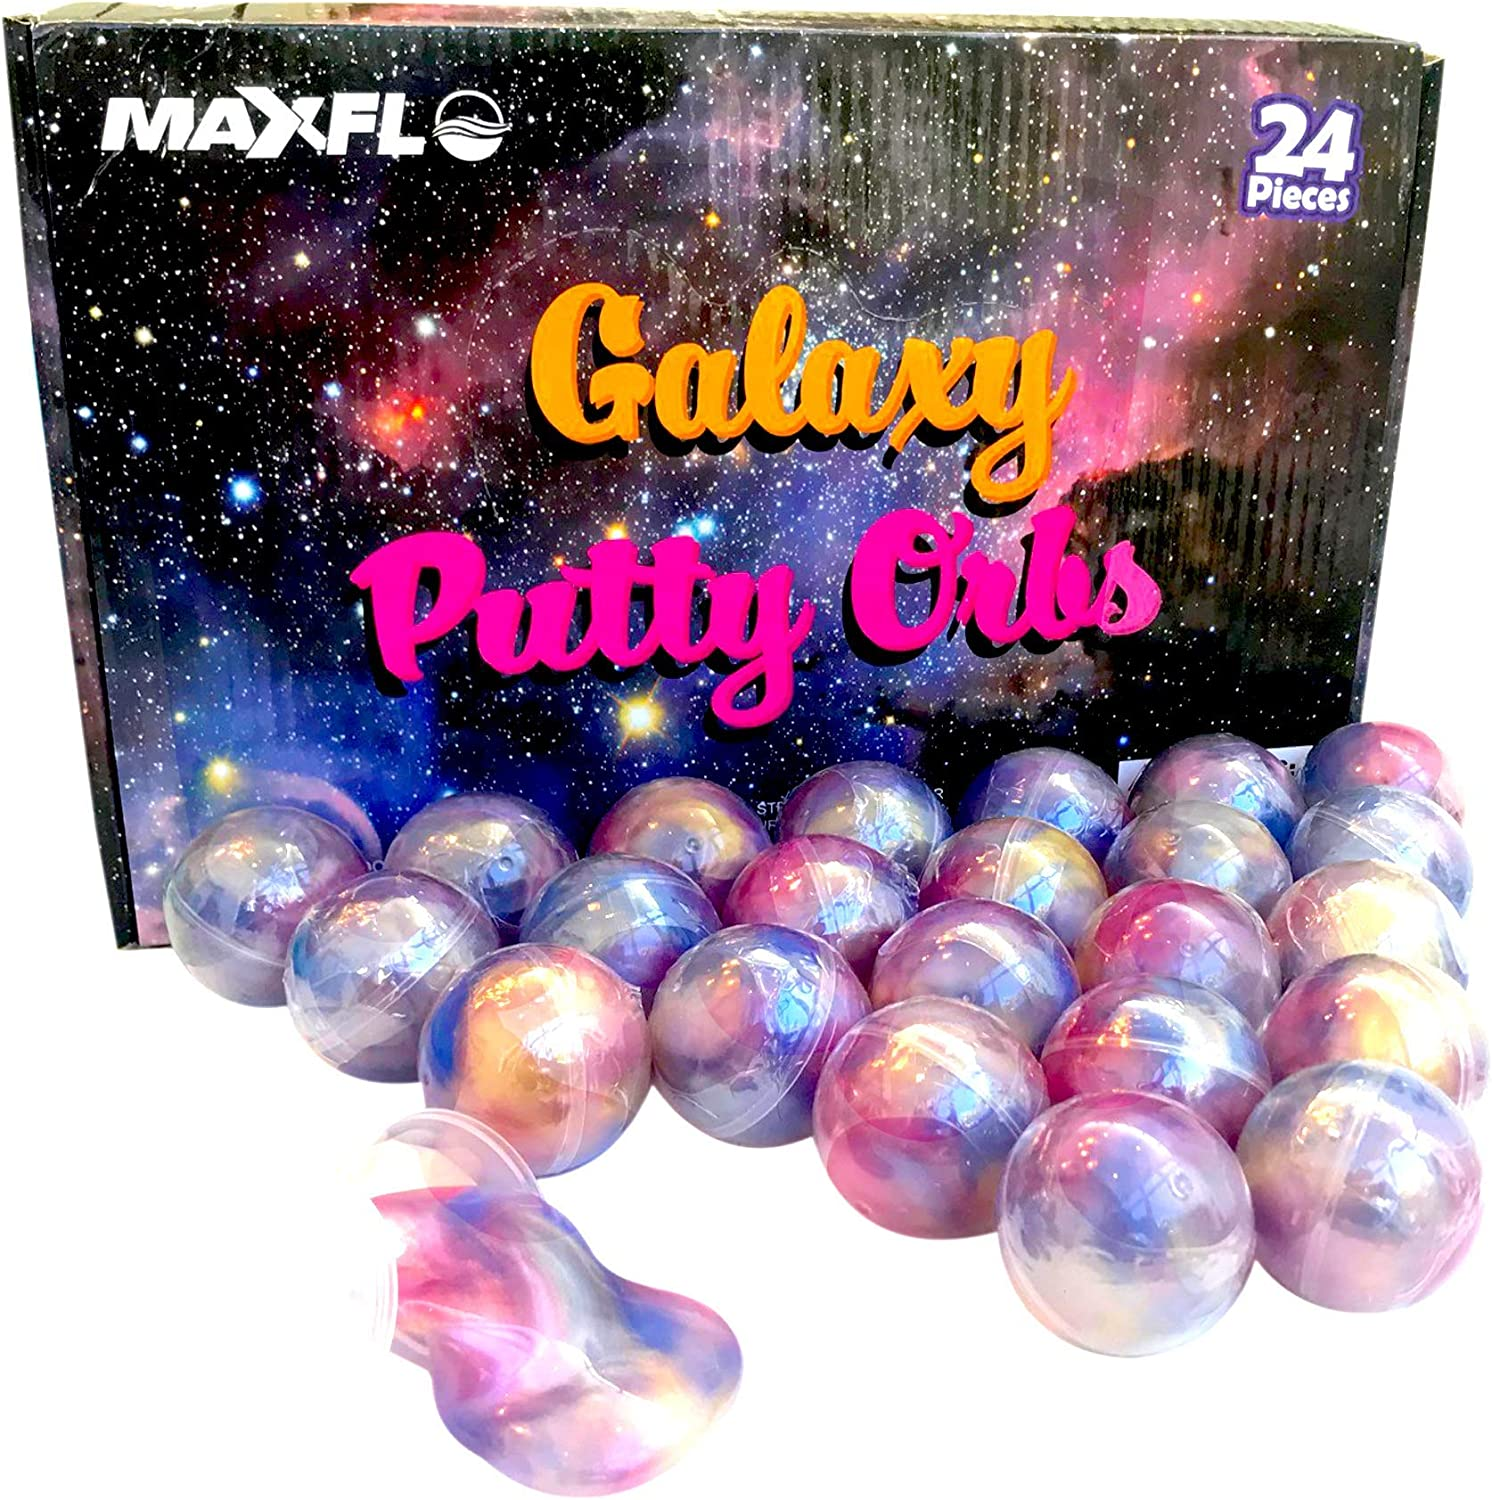 Galaxy Putty Space Party Favors Kids Putty Slime Stress /& Anxiety Relief 24 Pack Party Favor for Kids Girls /& Boys Slime Party Favors Putty Balls Adults Non Sticky Putty Bulk